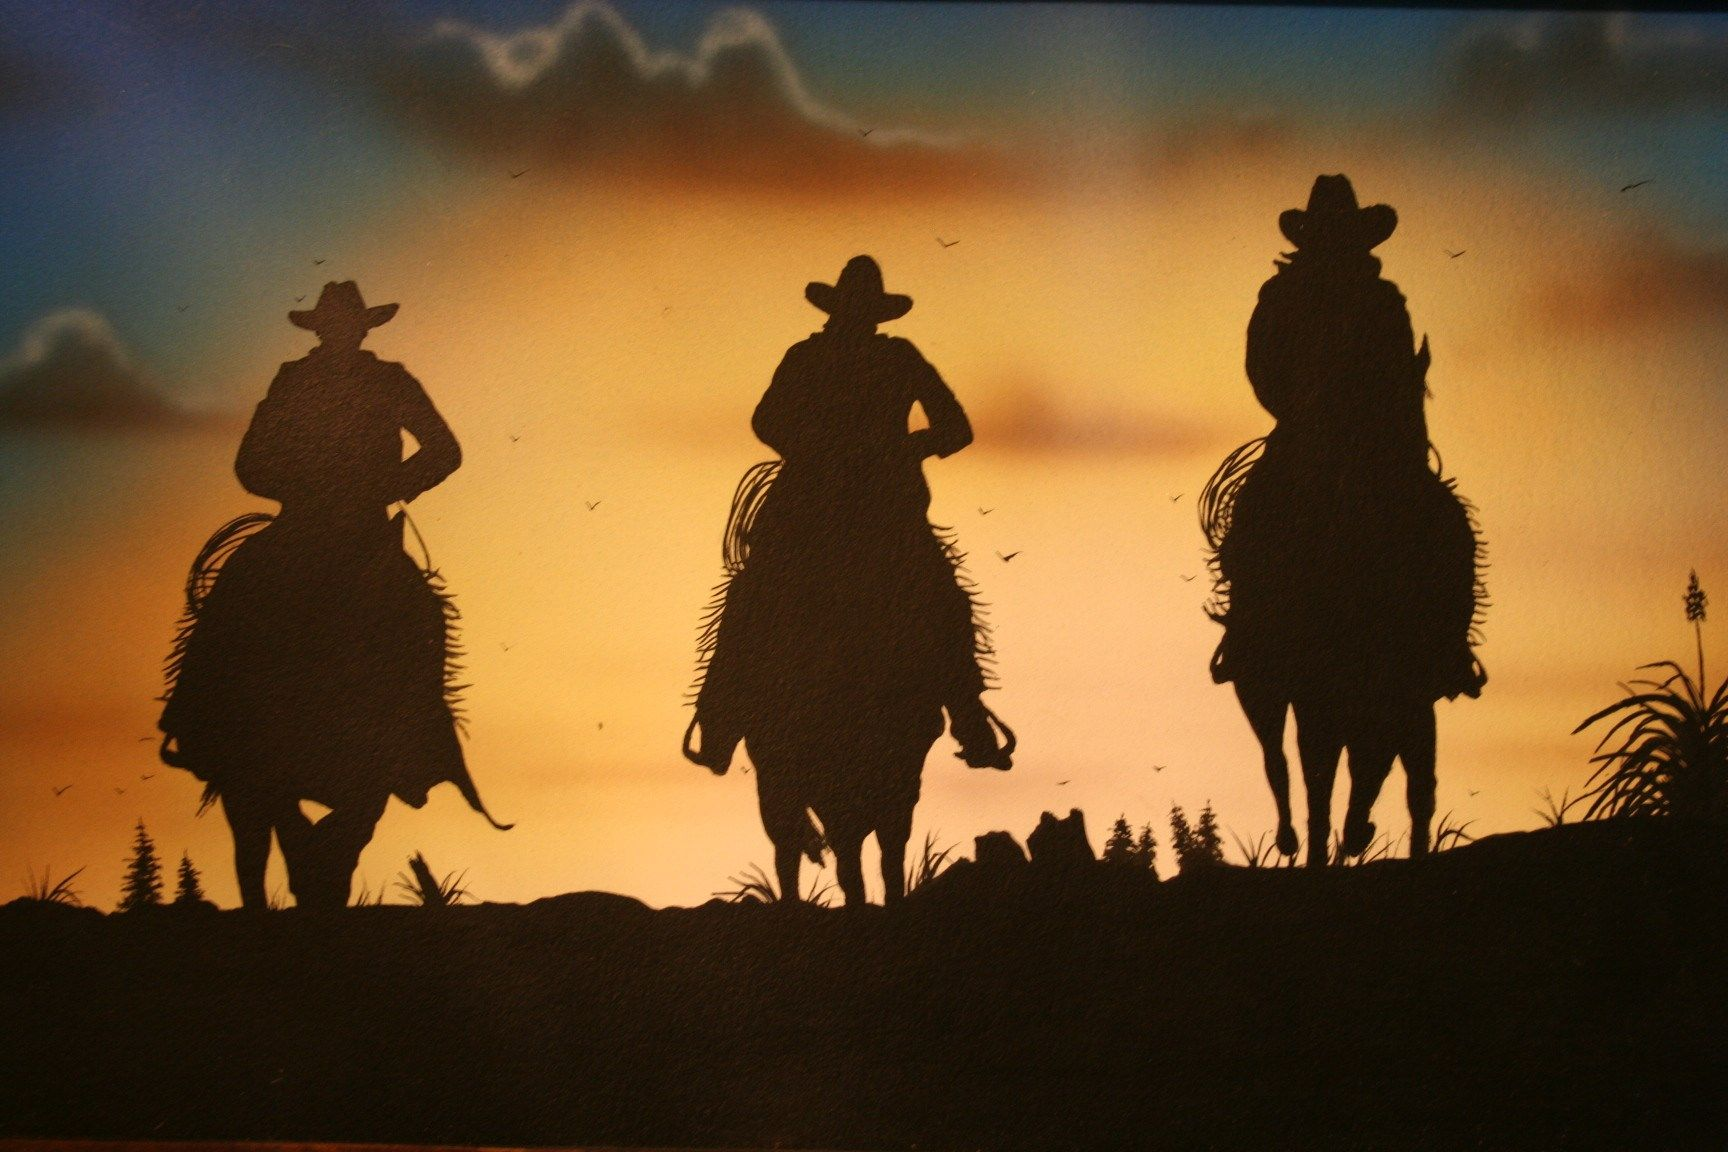 Hd Western Desktop Wallpaper Cowboy Pictures Cowboys Cowboy Poetry